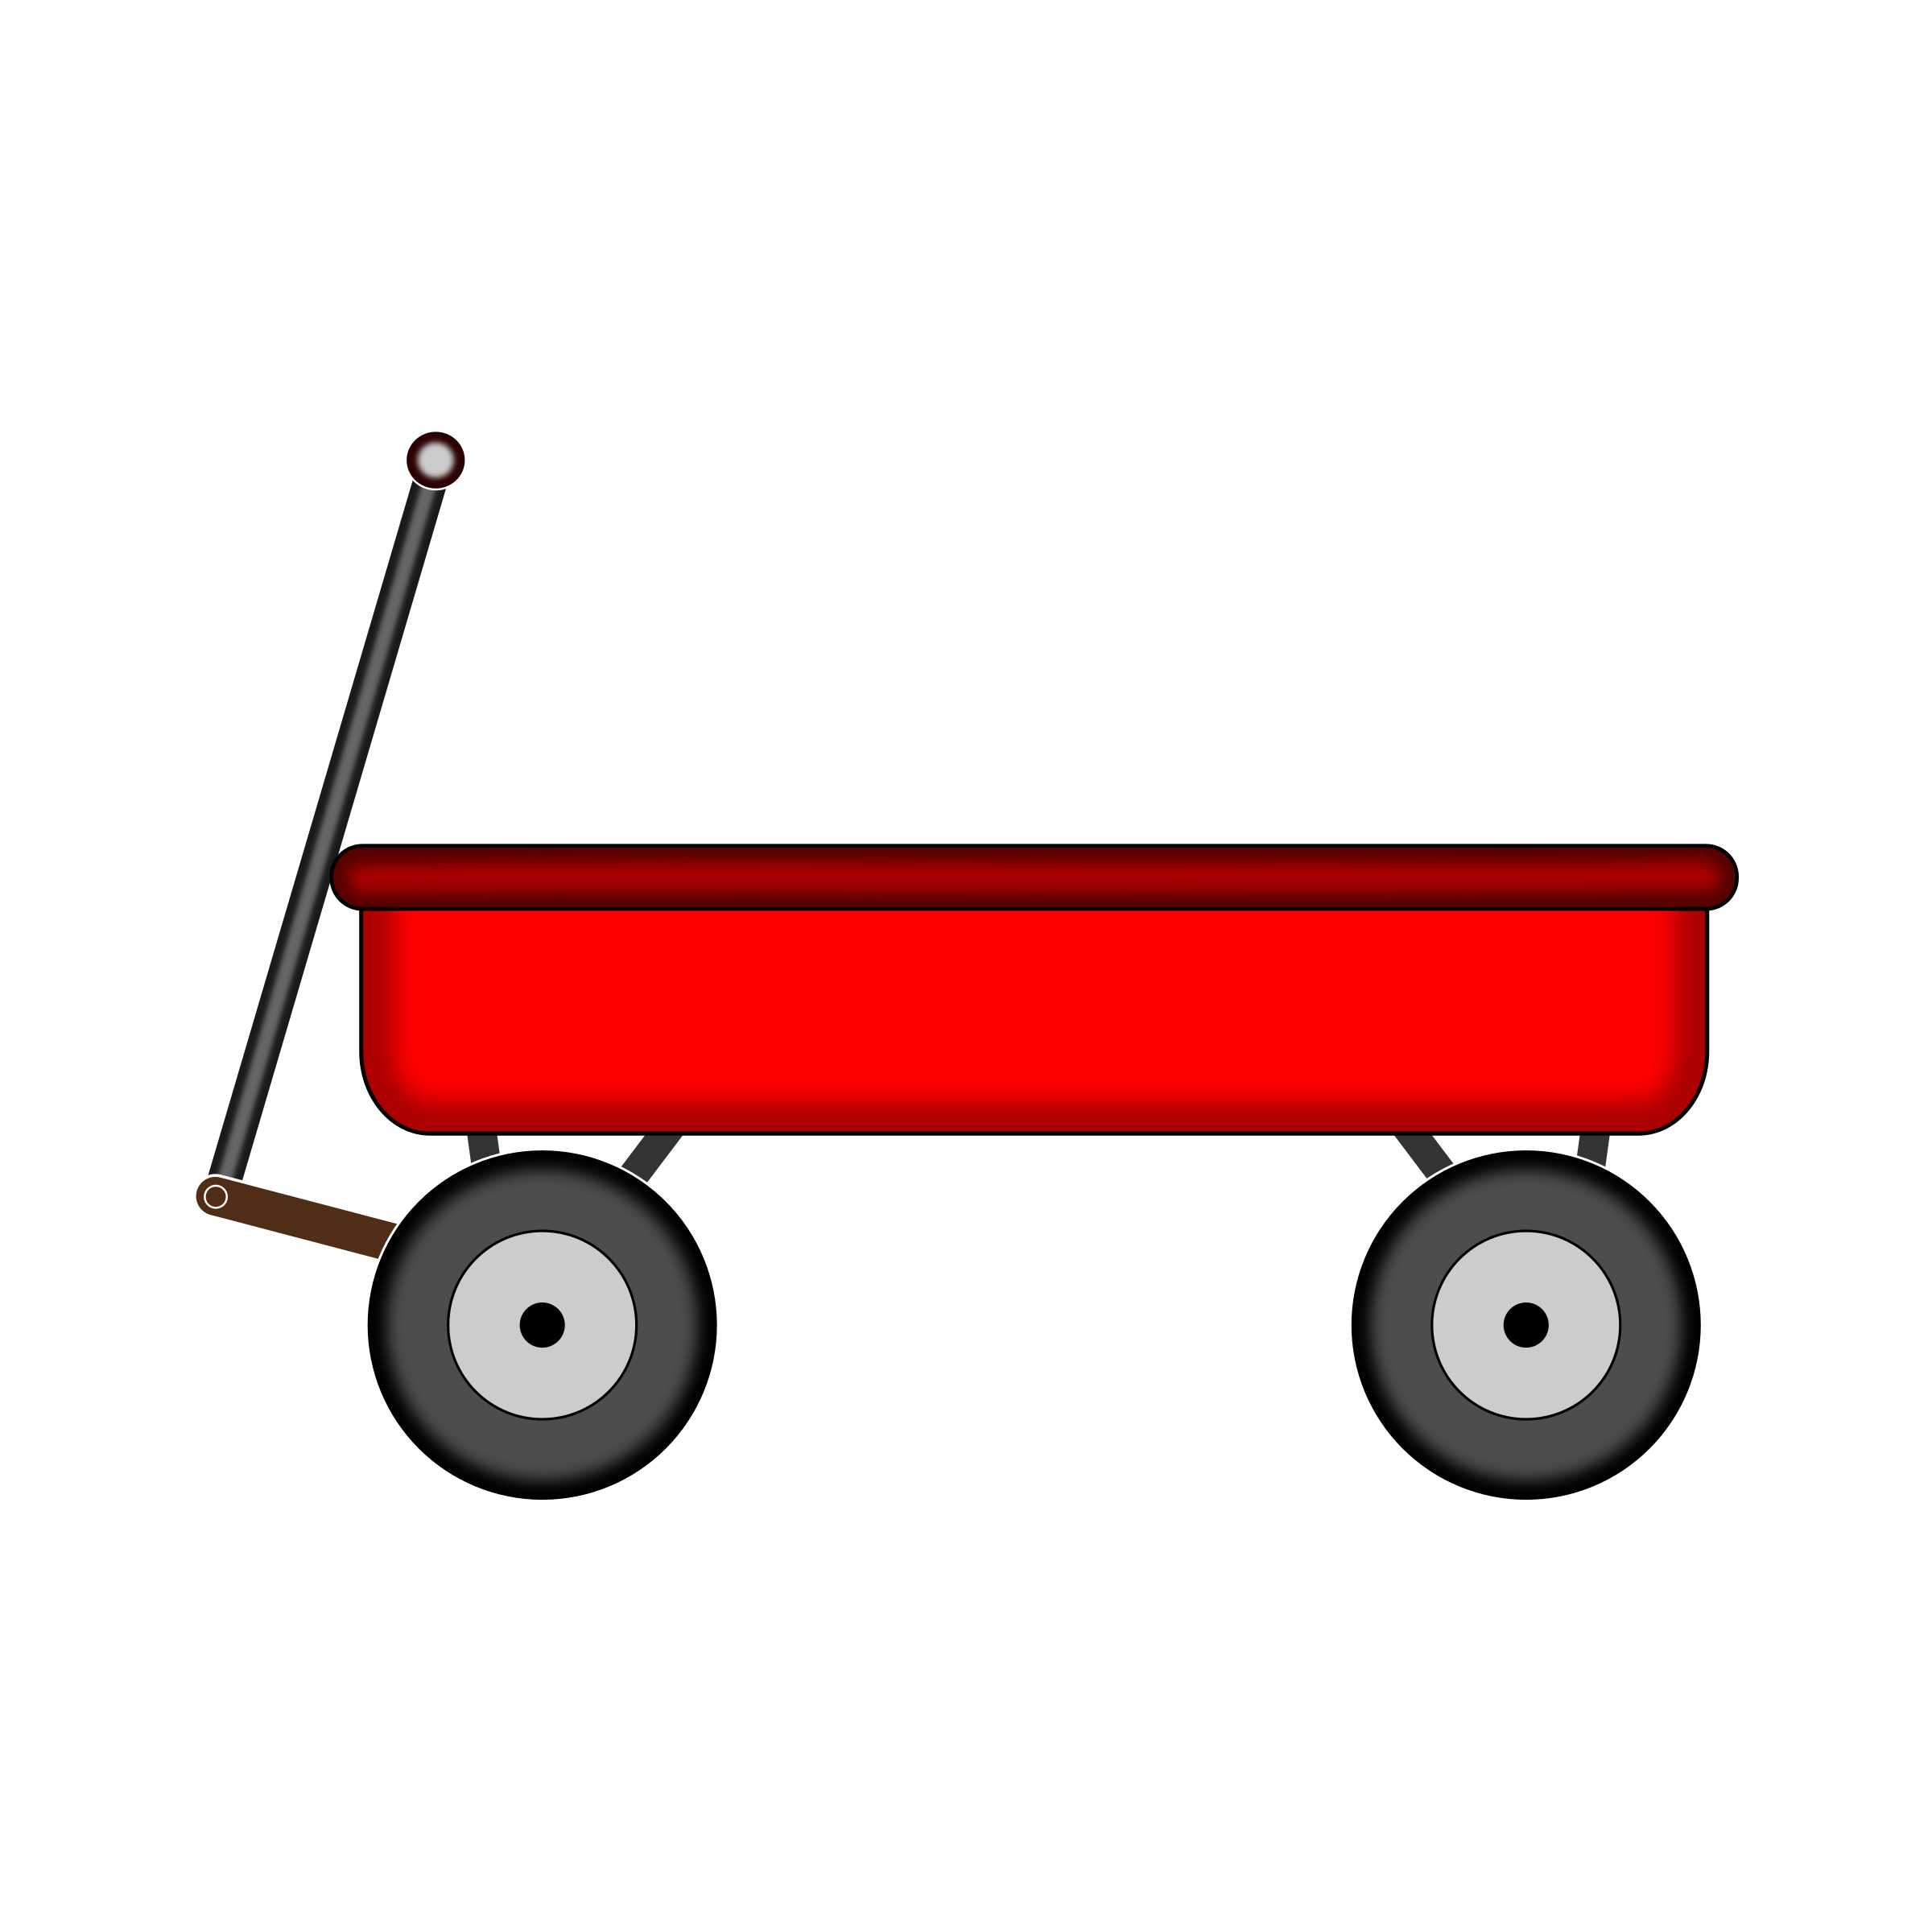 Red Wagon Clipart Images.